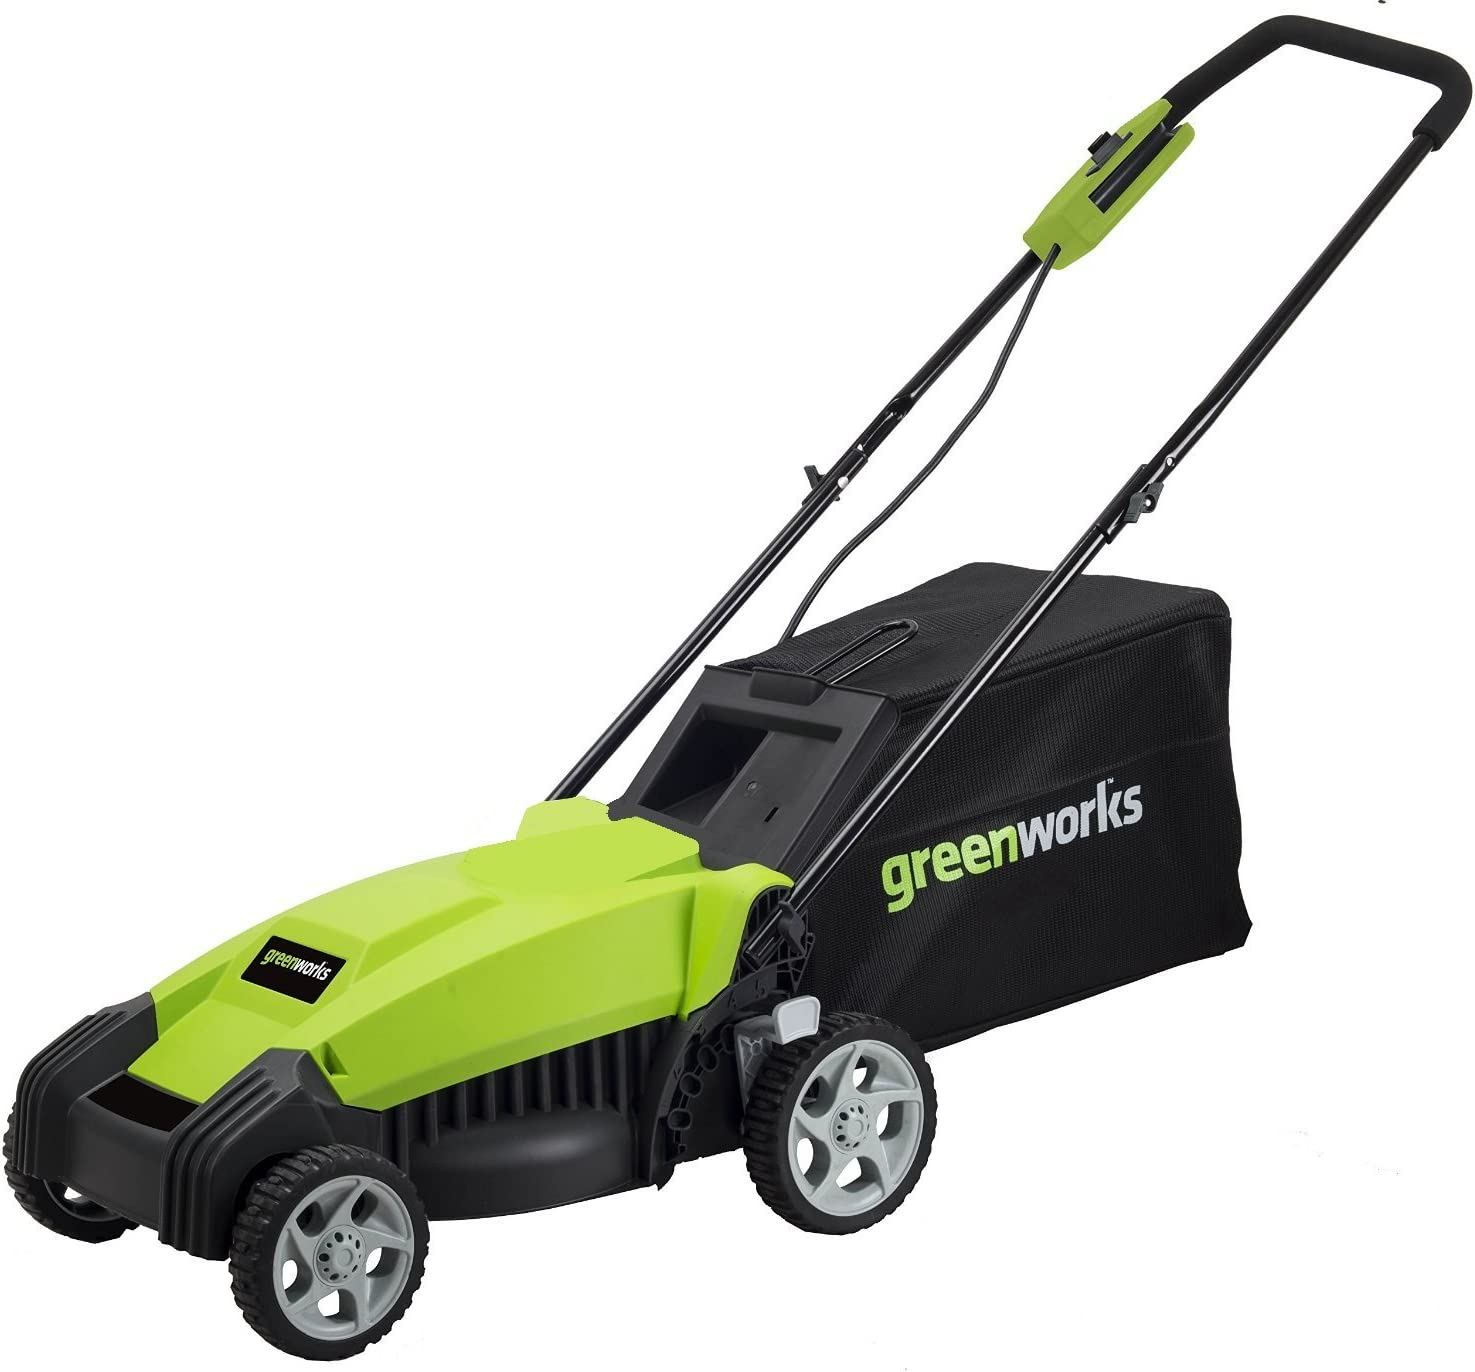 Greenworks MO14B00 Corded Electric Lawn Mower